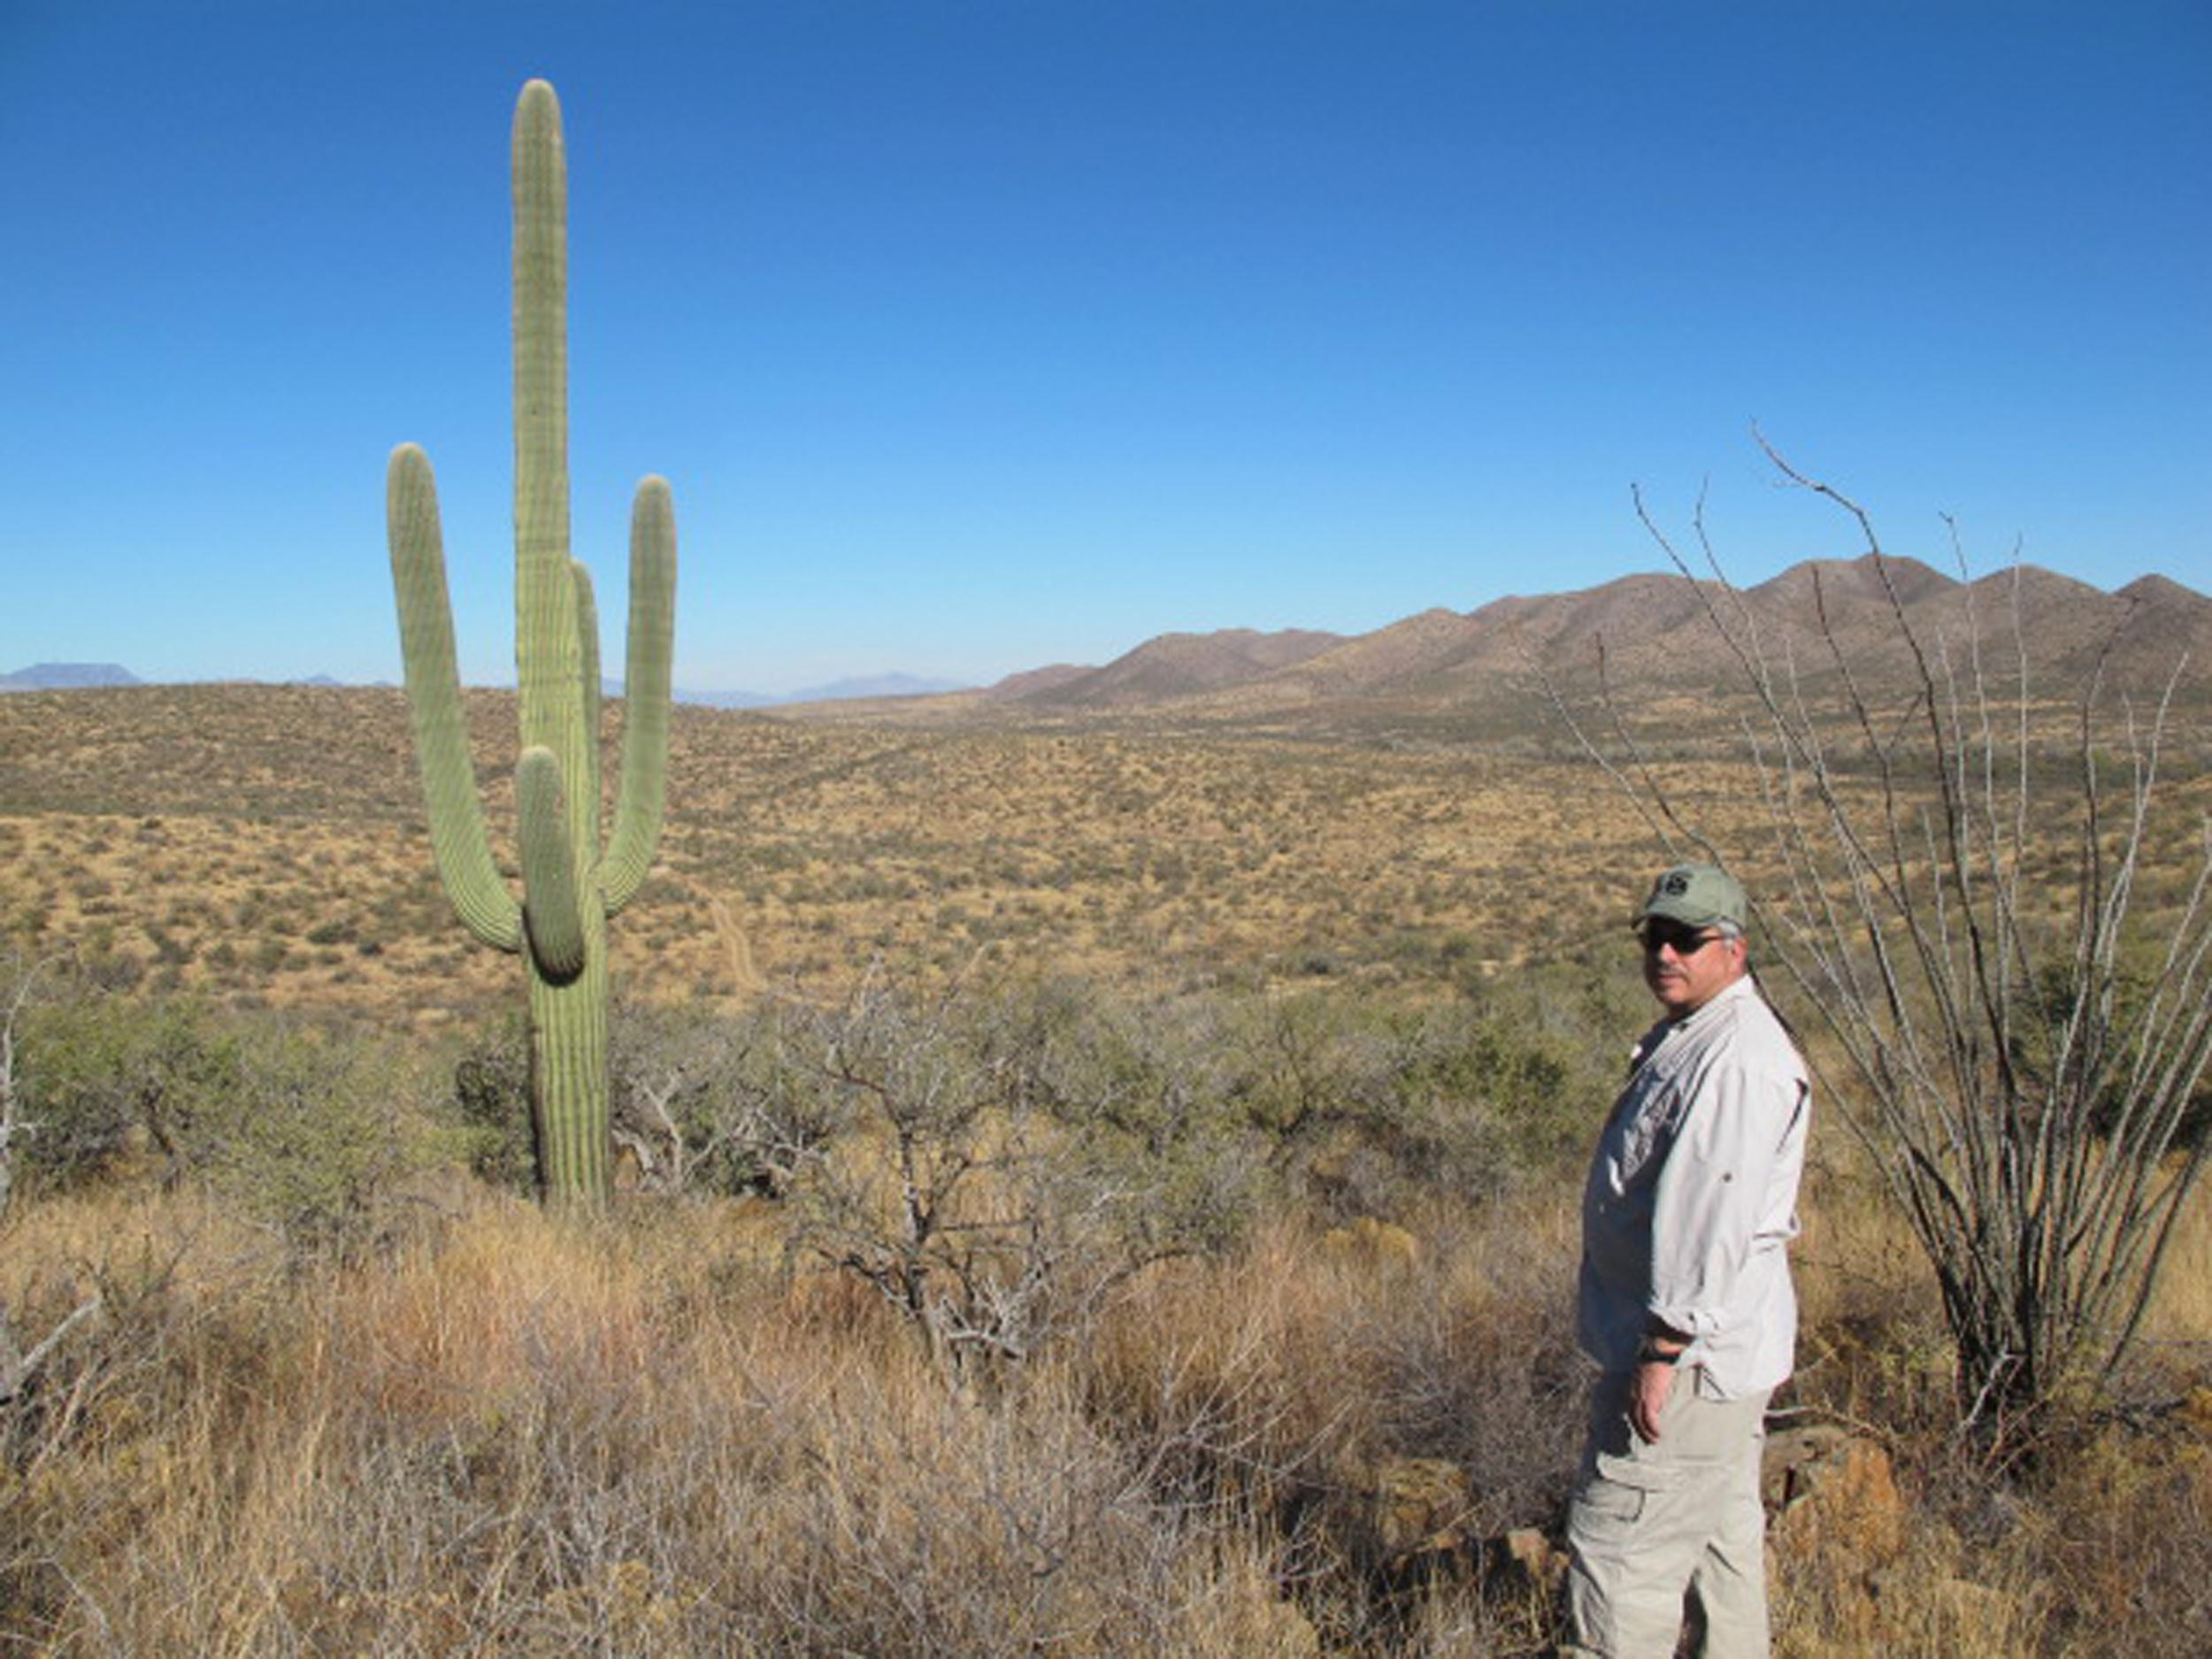 Image: Anthony Coulson, former DEA ASAC, visits the Chilton ranch on the U.S. and Mexico border in